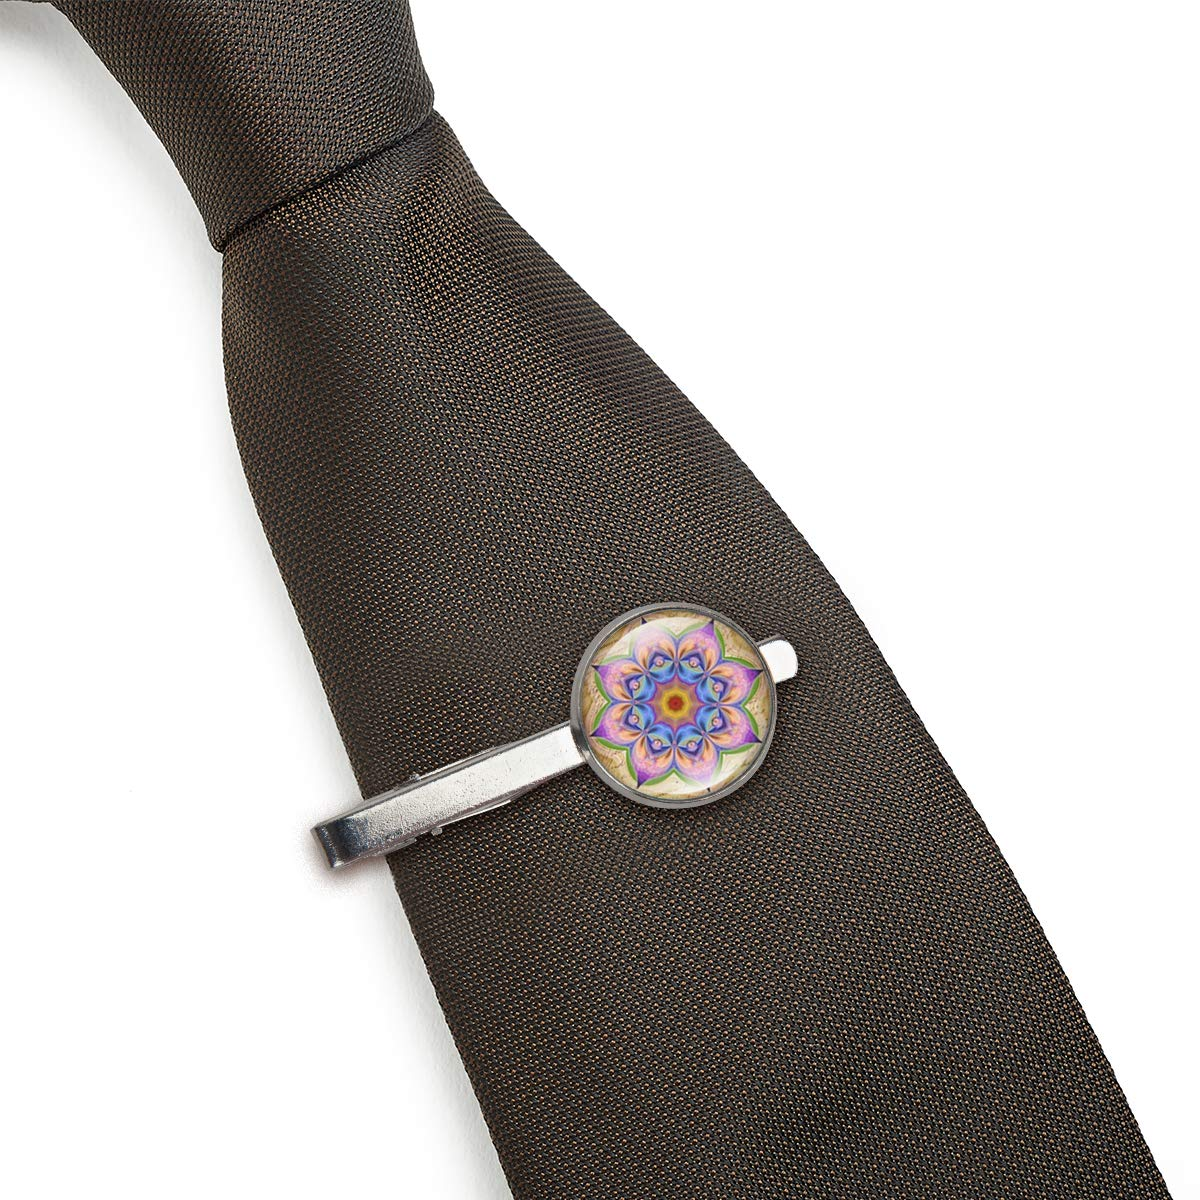 LooPoP Men Tie Clip Mandala Bohemian Flowers Stainless Tie Pins for Business Wedding Shirts Tie Clips Include Gift Box